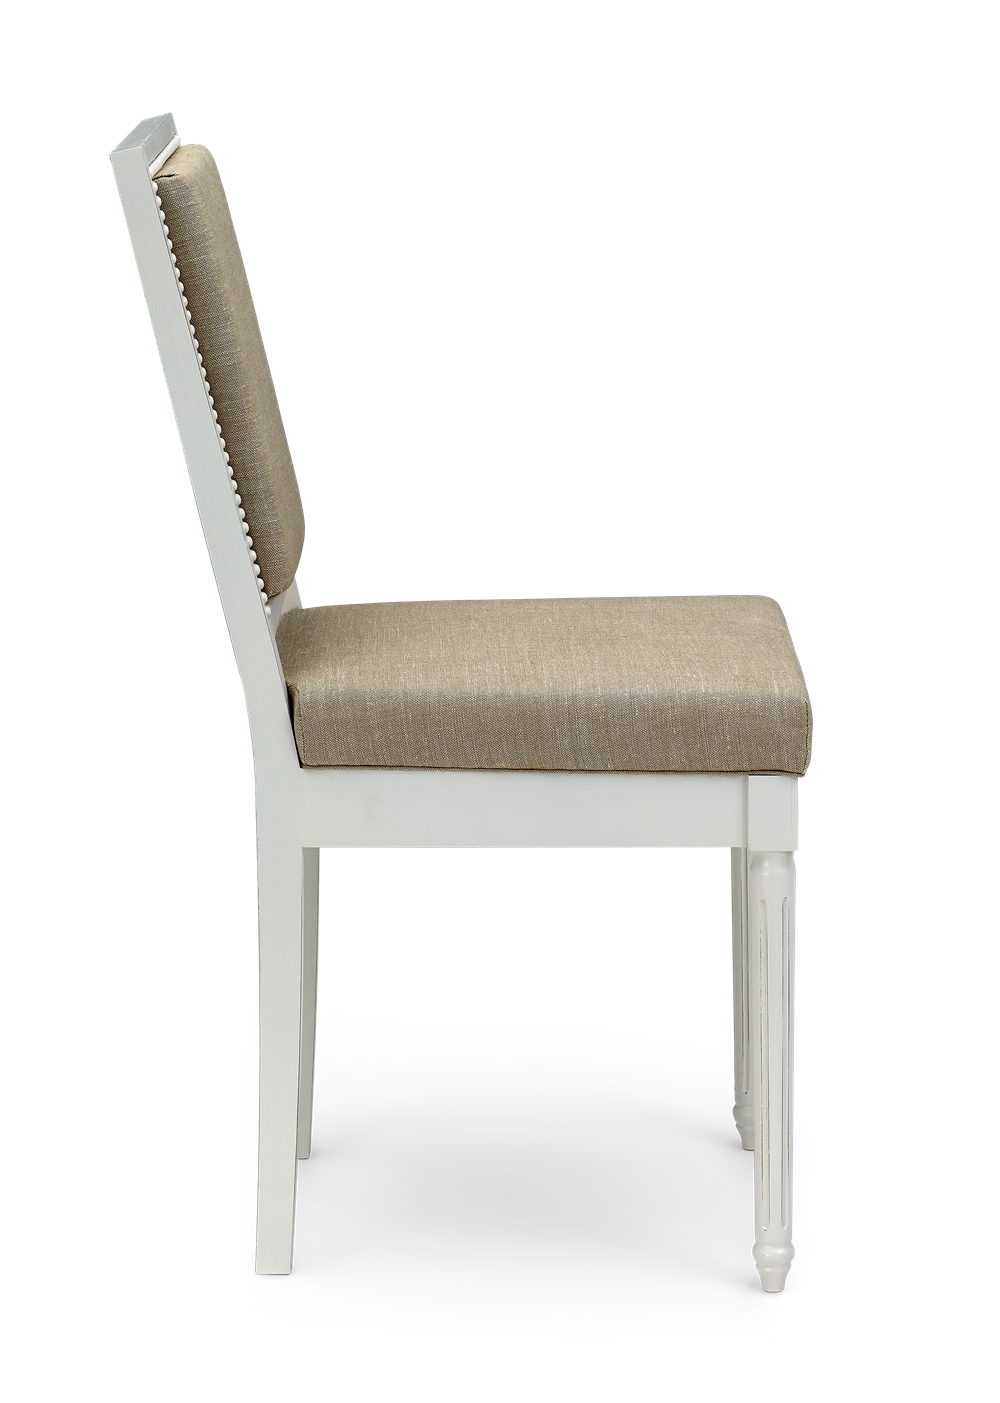 Larsson bedroom chair side